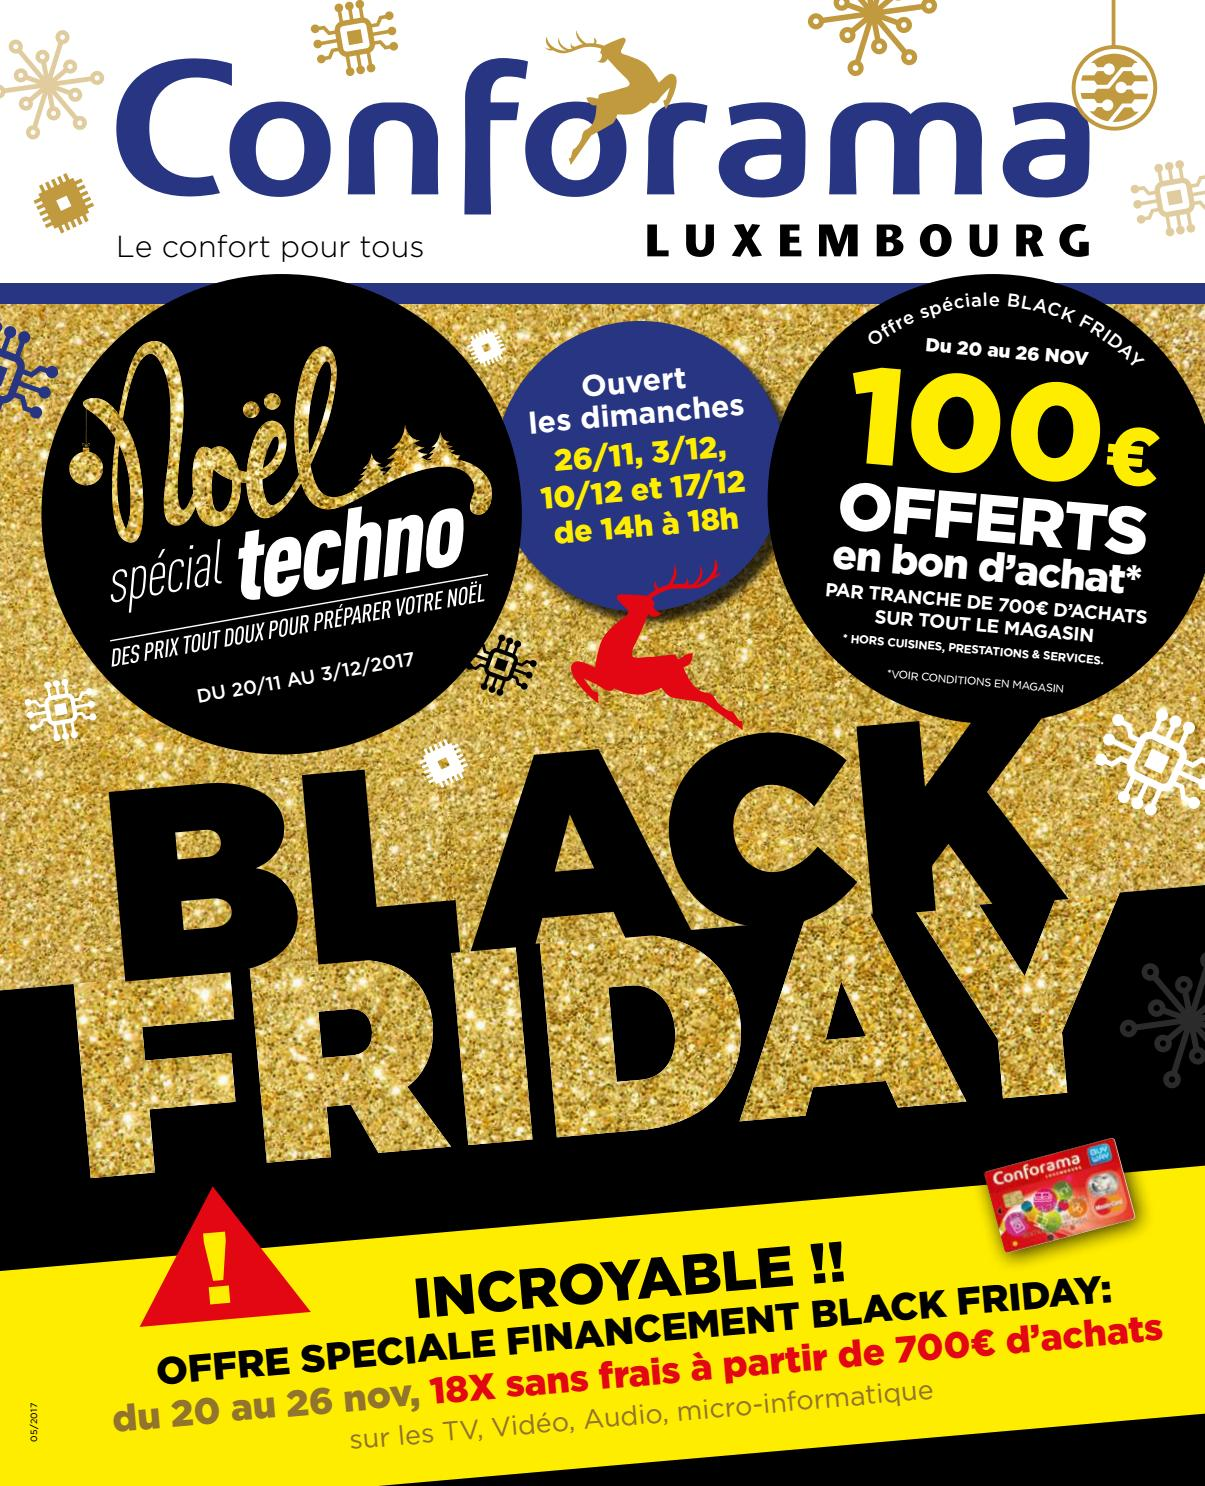 Doc 05 black friday by conforama luxembourg issuu for Conforama black friday